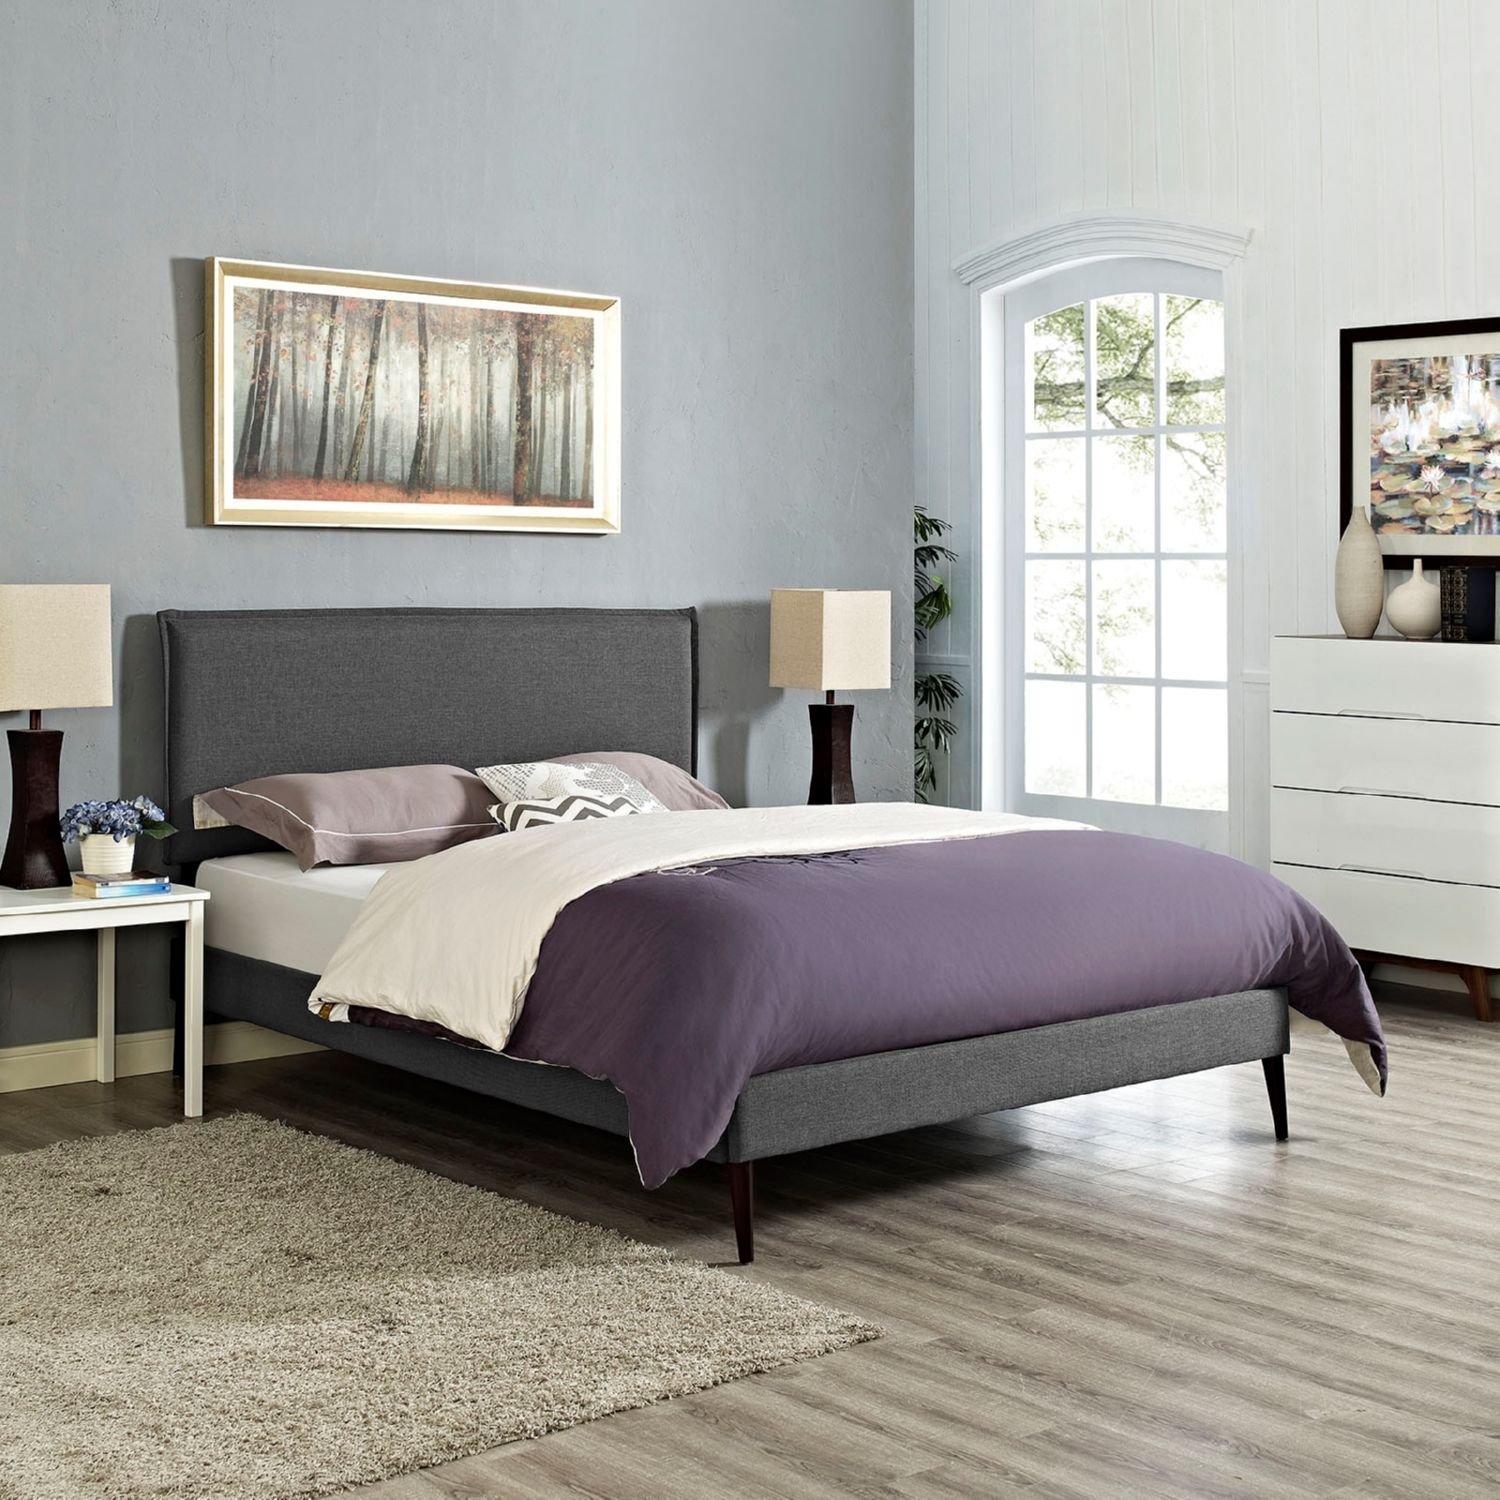 Modway Furniture 5635 Gray Queen Fabric Platform Bed Frame